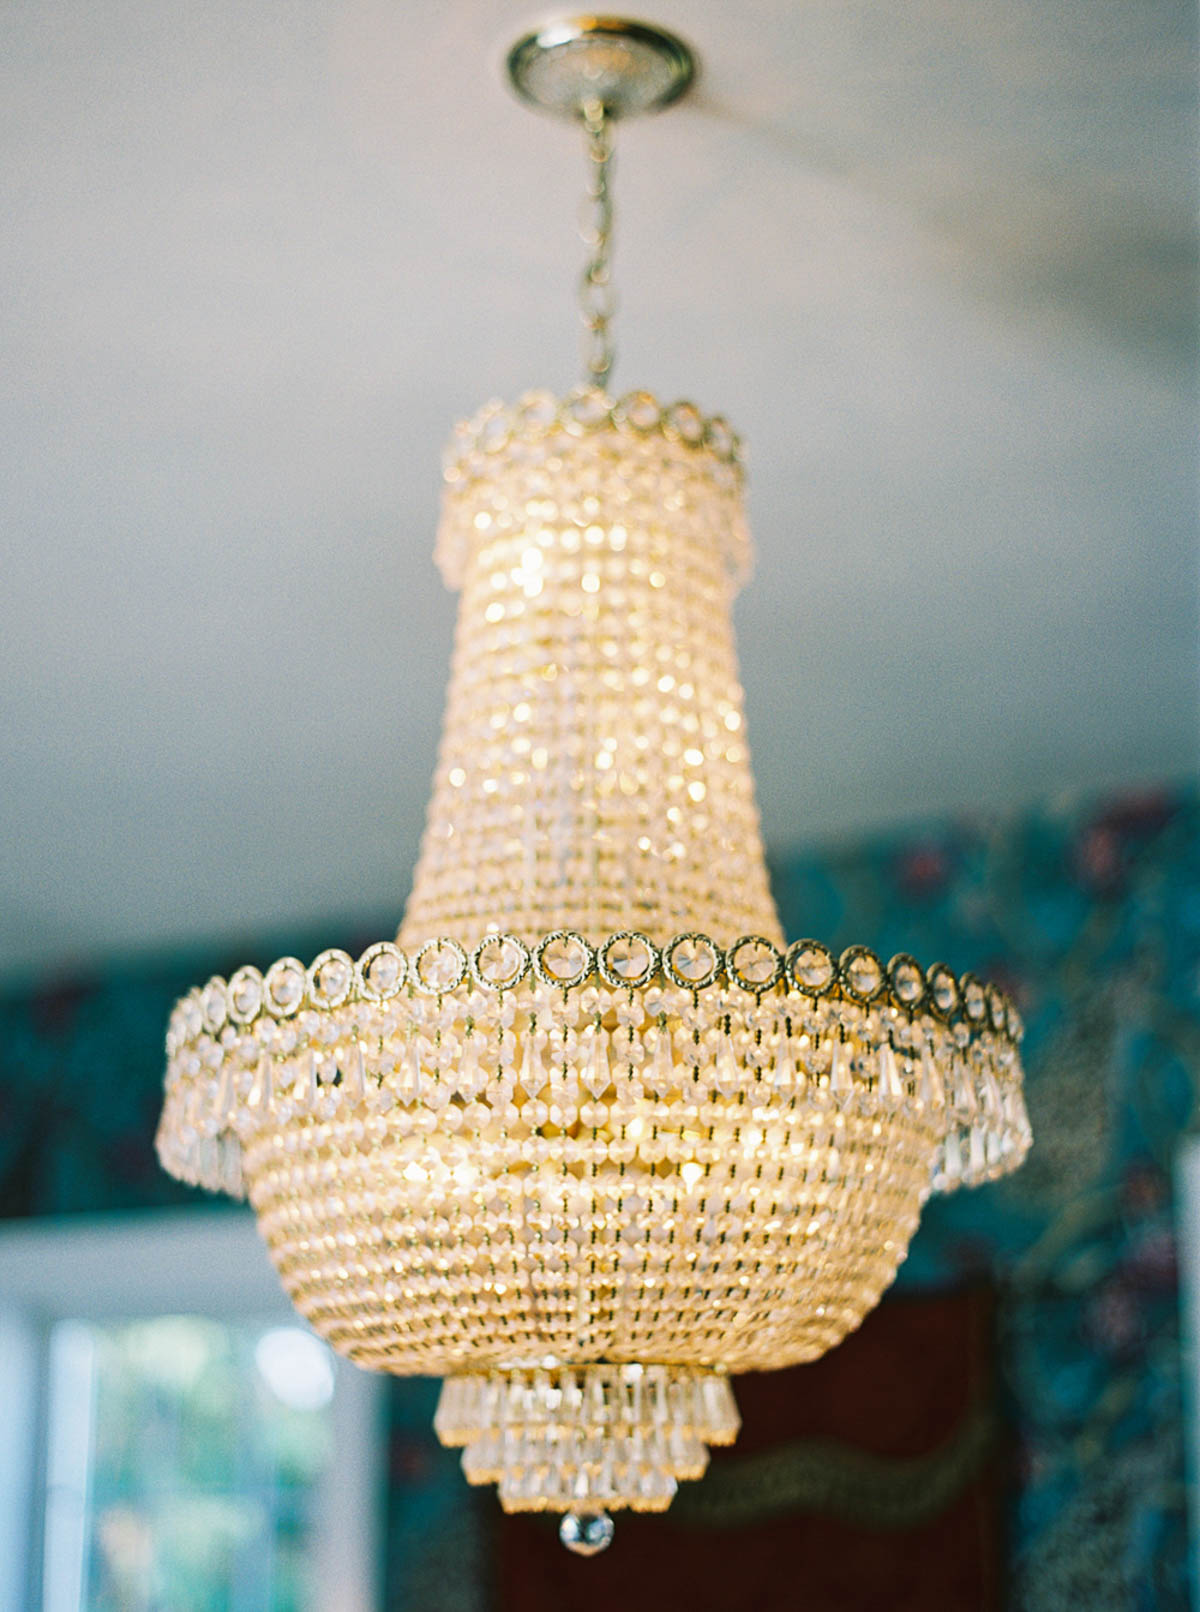 Chandelier detail at a Crockett Farm Wedding, by fine art film wedding photographer Anna Peter